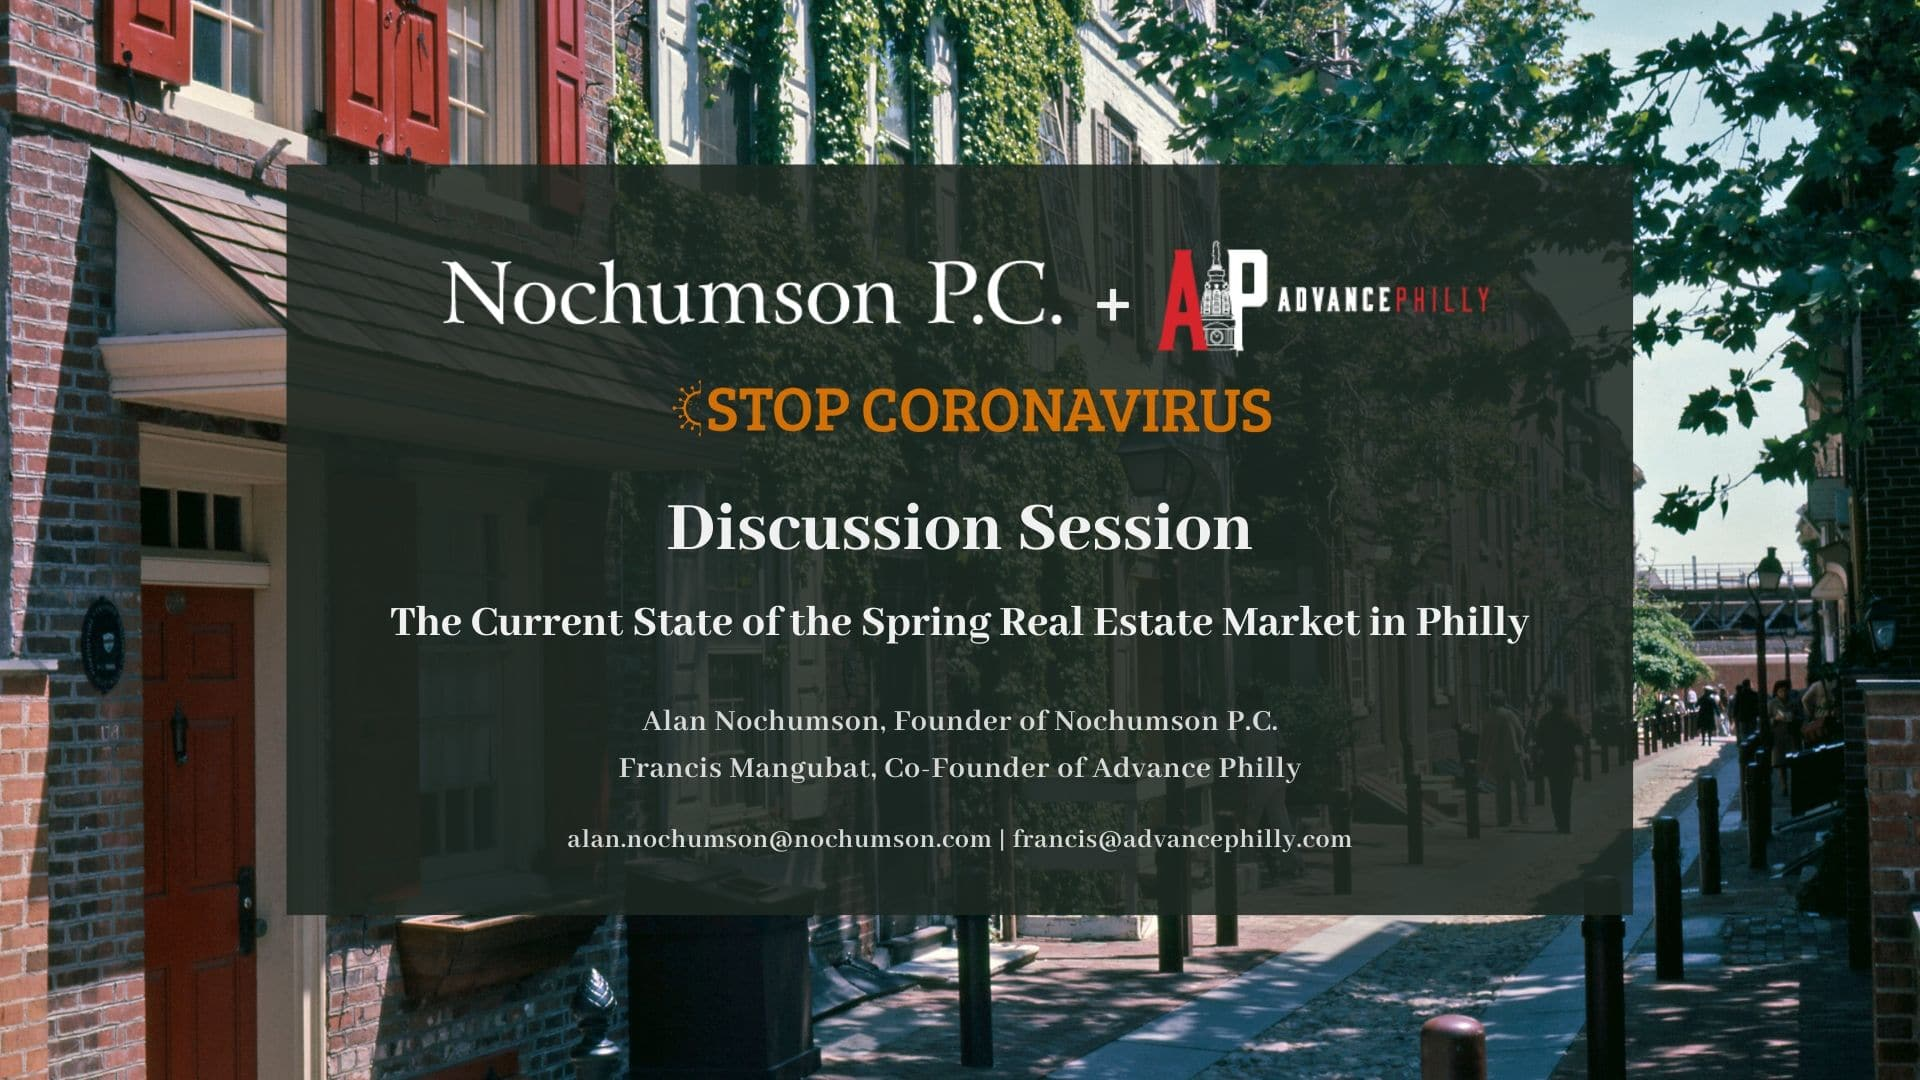 The Current State of the Spring Real Estate Market in Philly